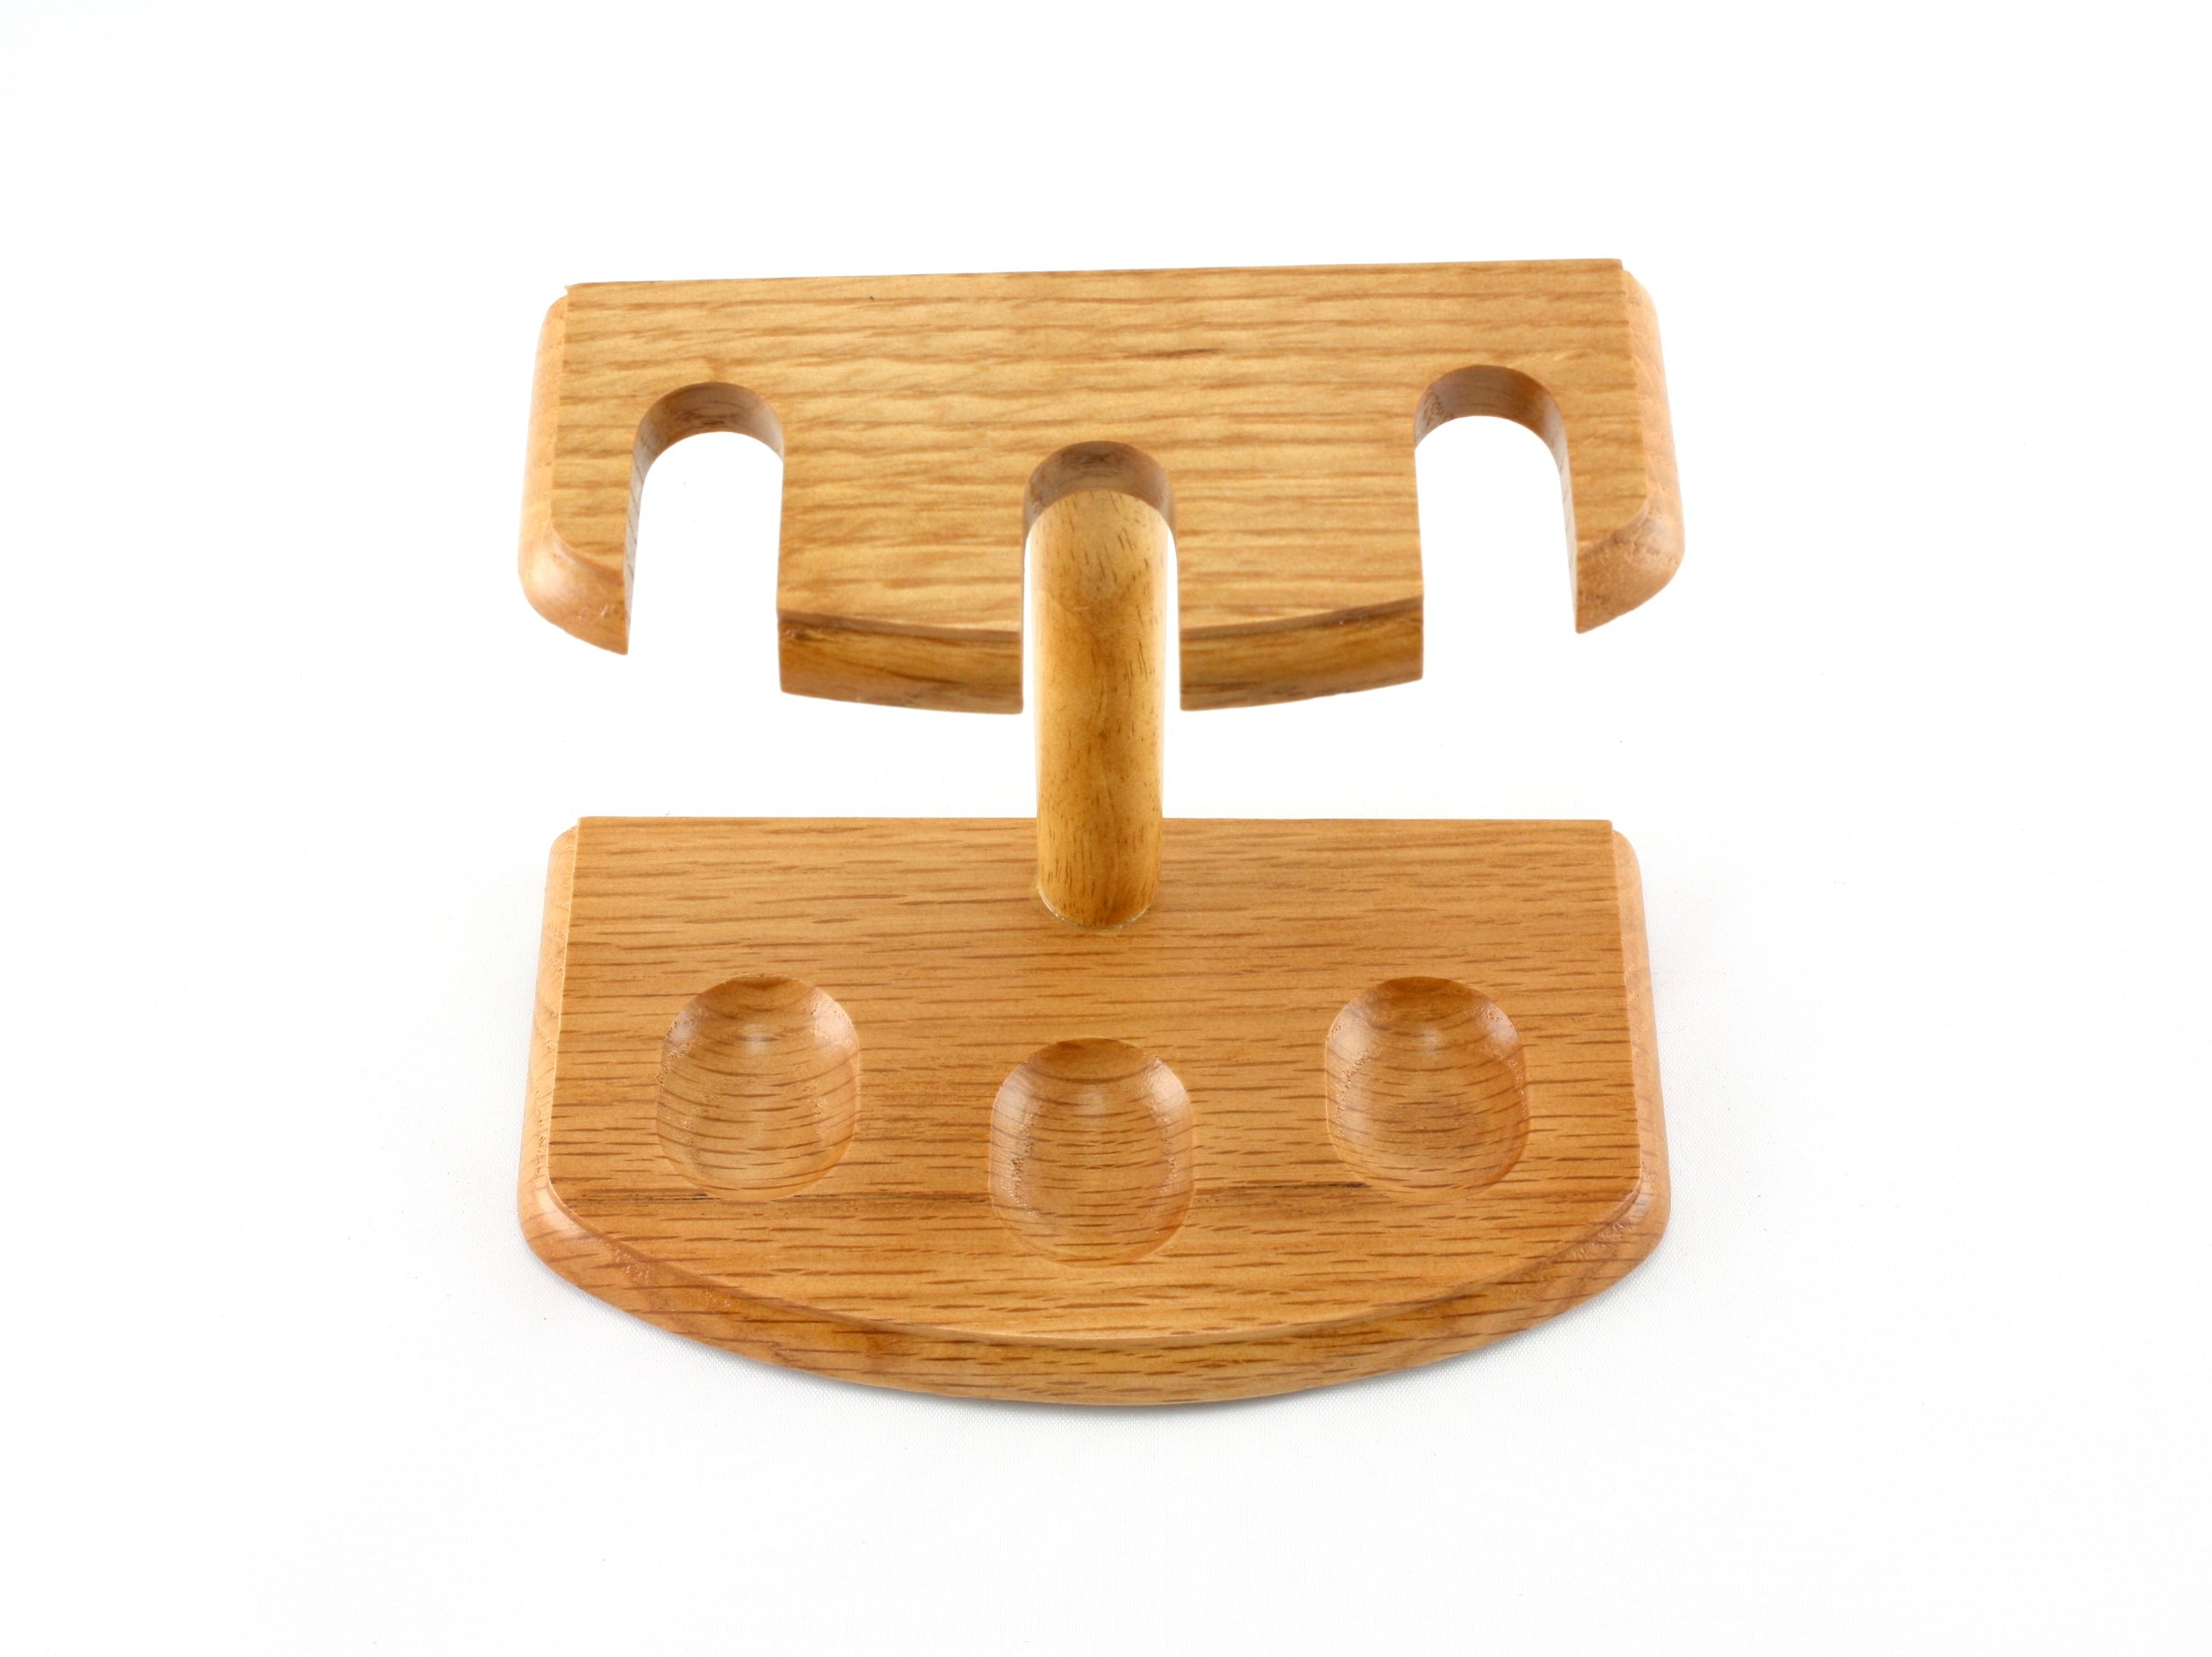 Skyway 3 Pipe Wood Tobacco Pipe Stand Rack Holder - Tan by Skyway Products